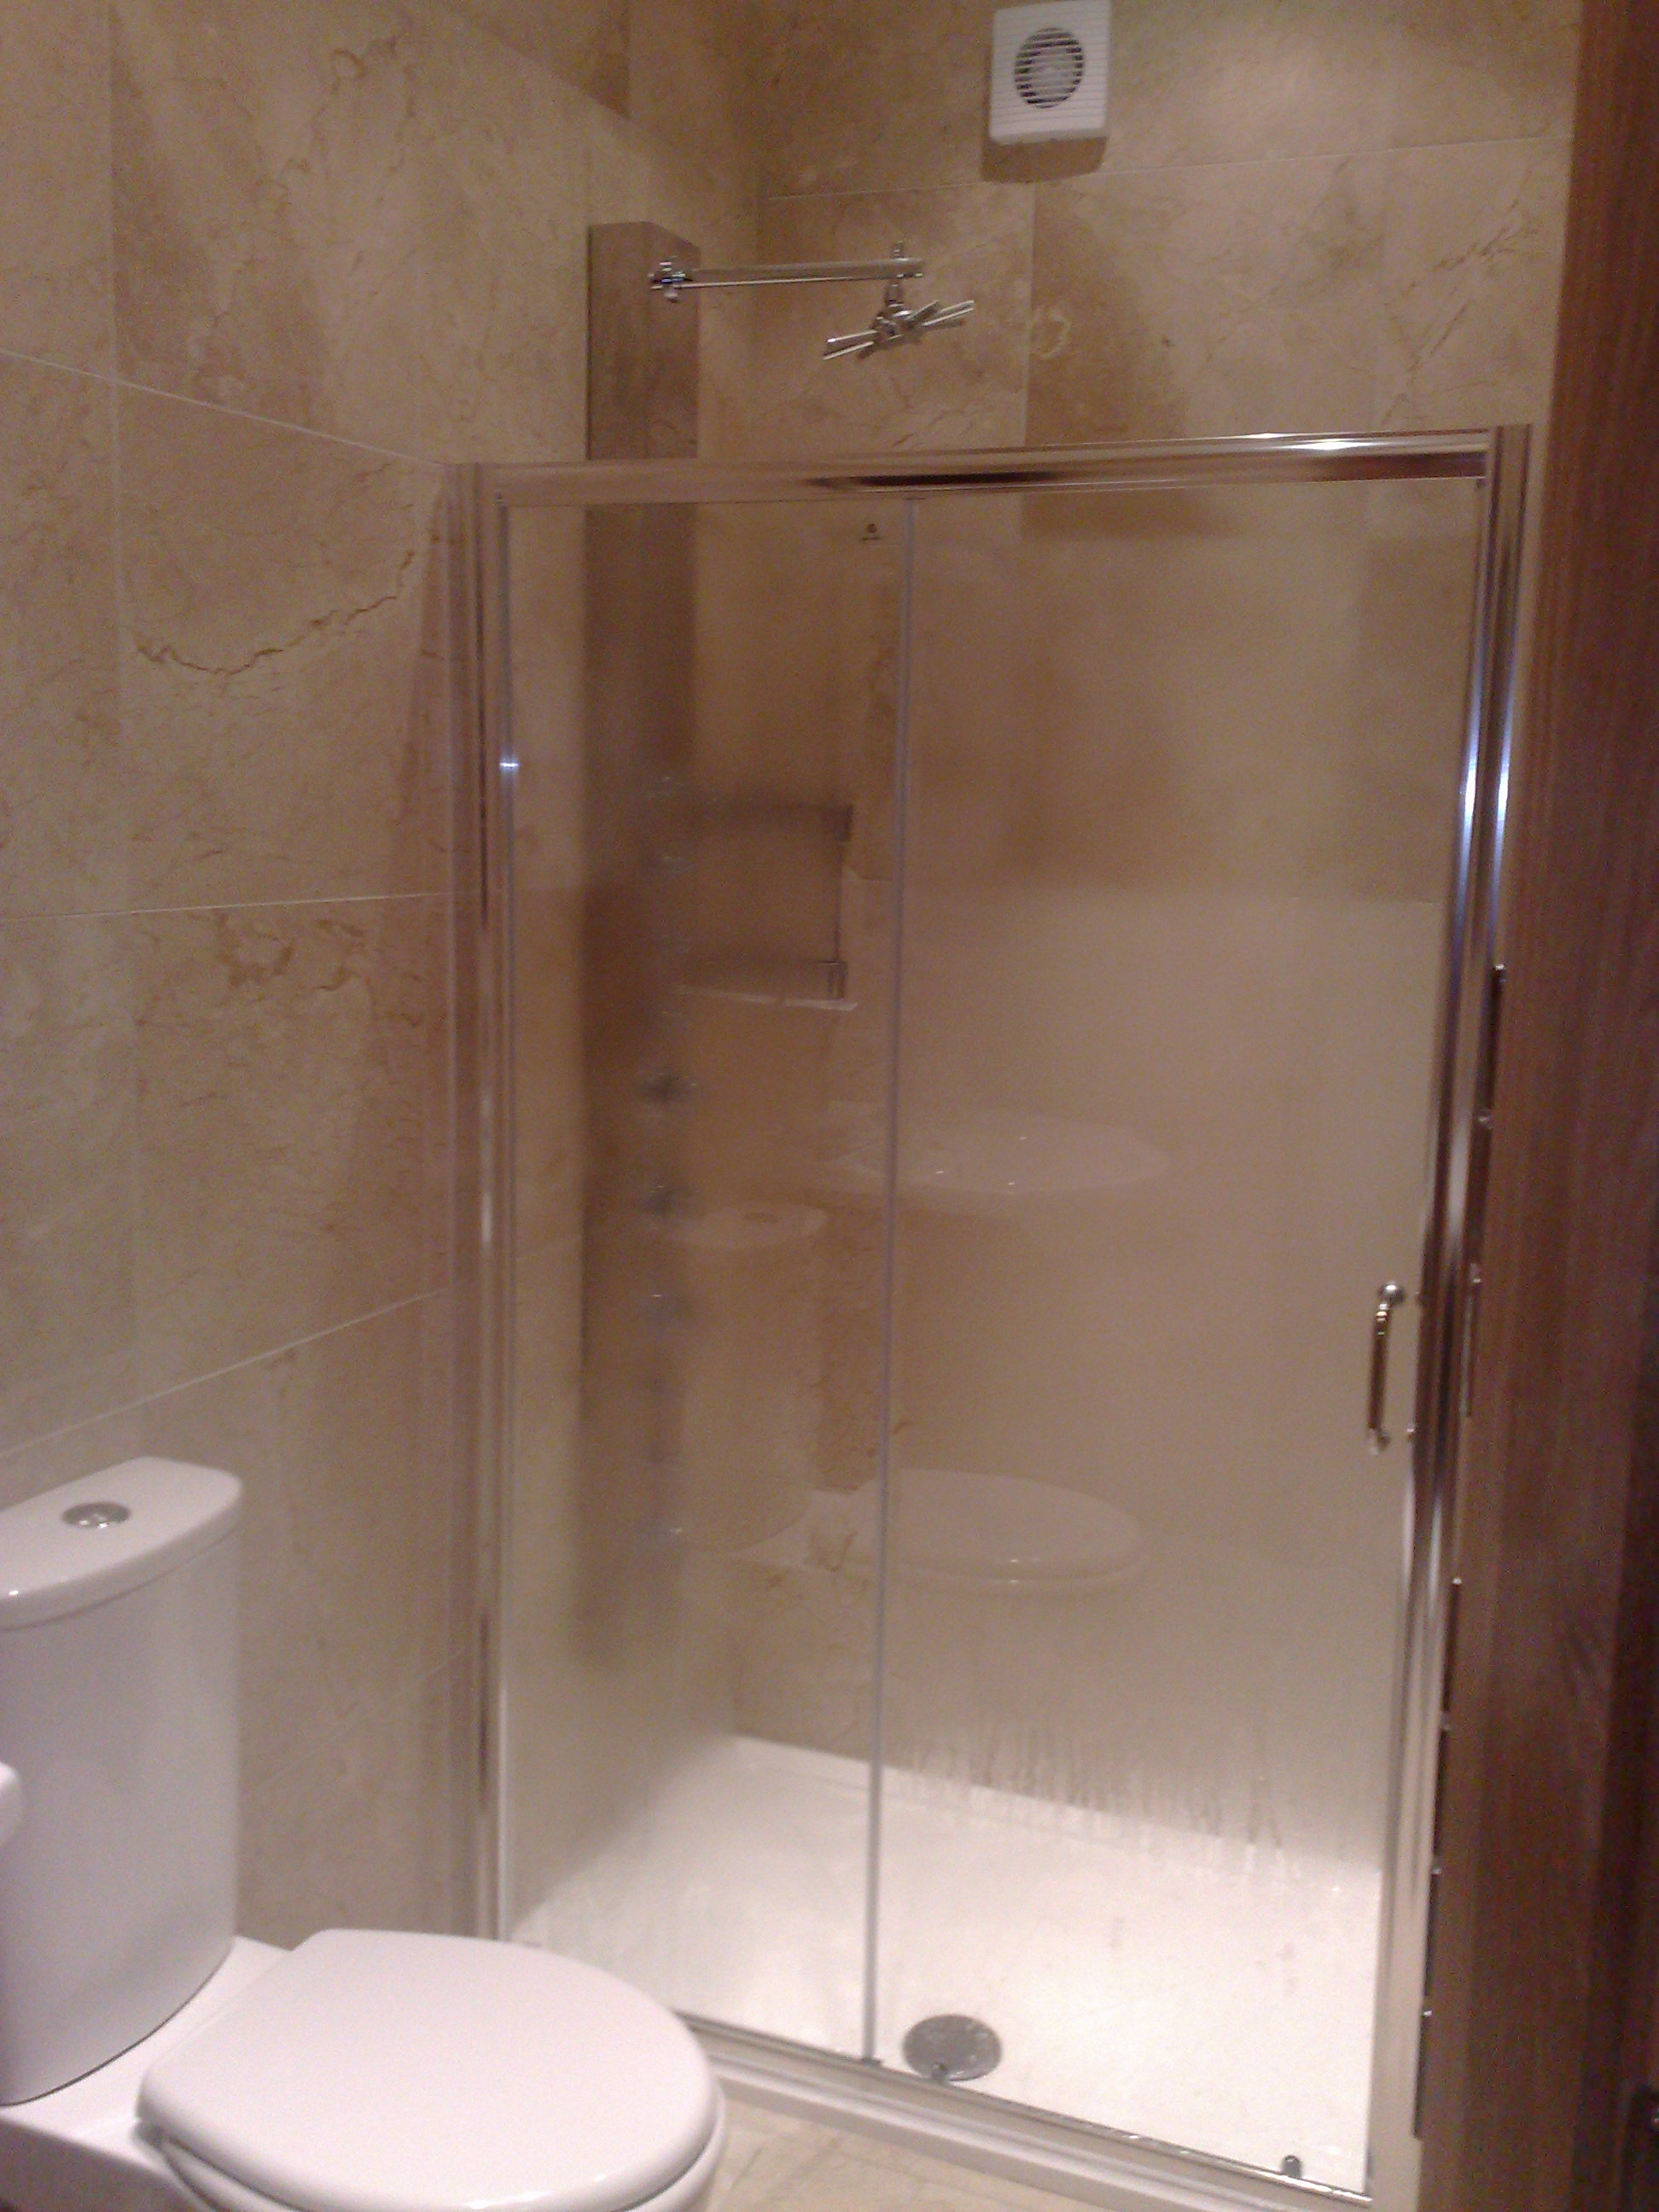 View Pictures And Photos For Kiwi Plumbing Complete Bathroom Service Lt Lt W